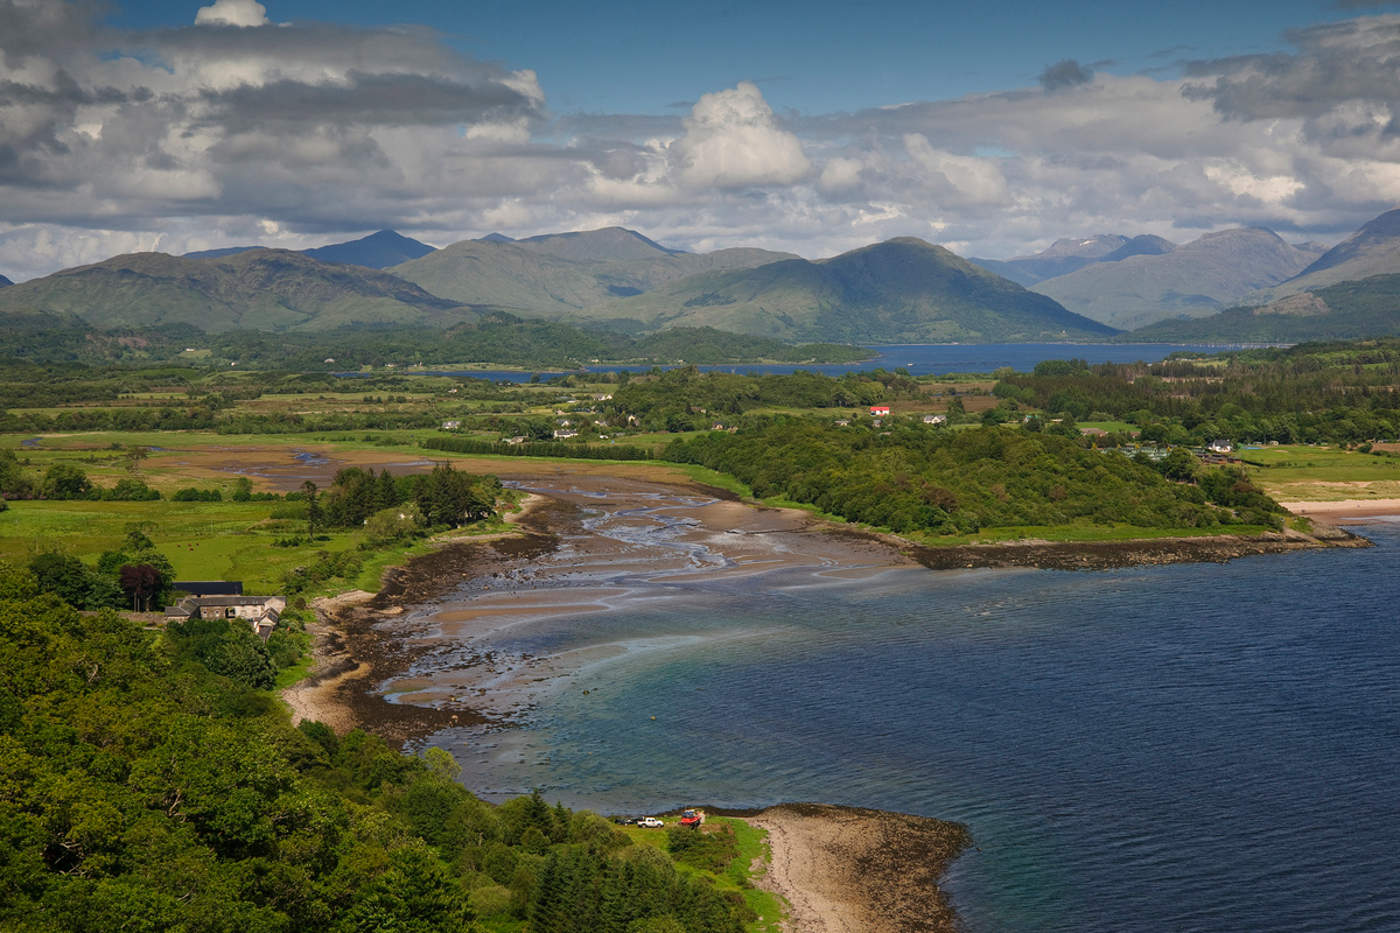 GREAT_VIEW_OF_TRALEE_BAY_AND_LOCH_CRERAN_FROM_TOWER_SMALL